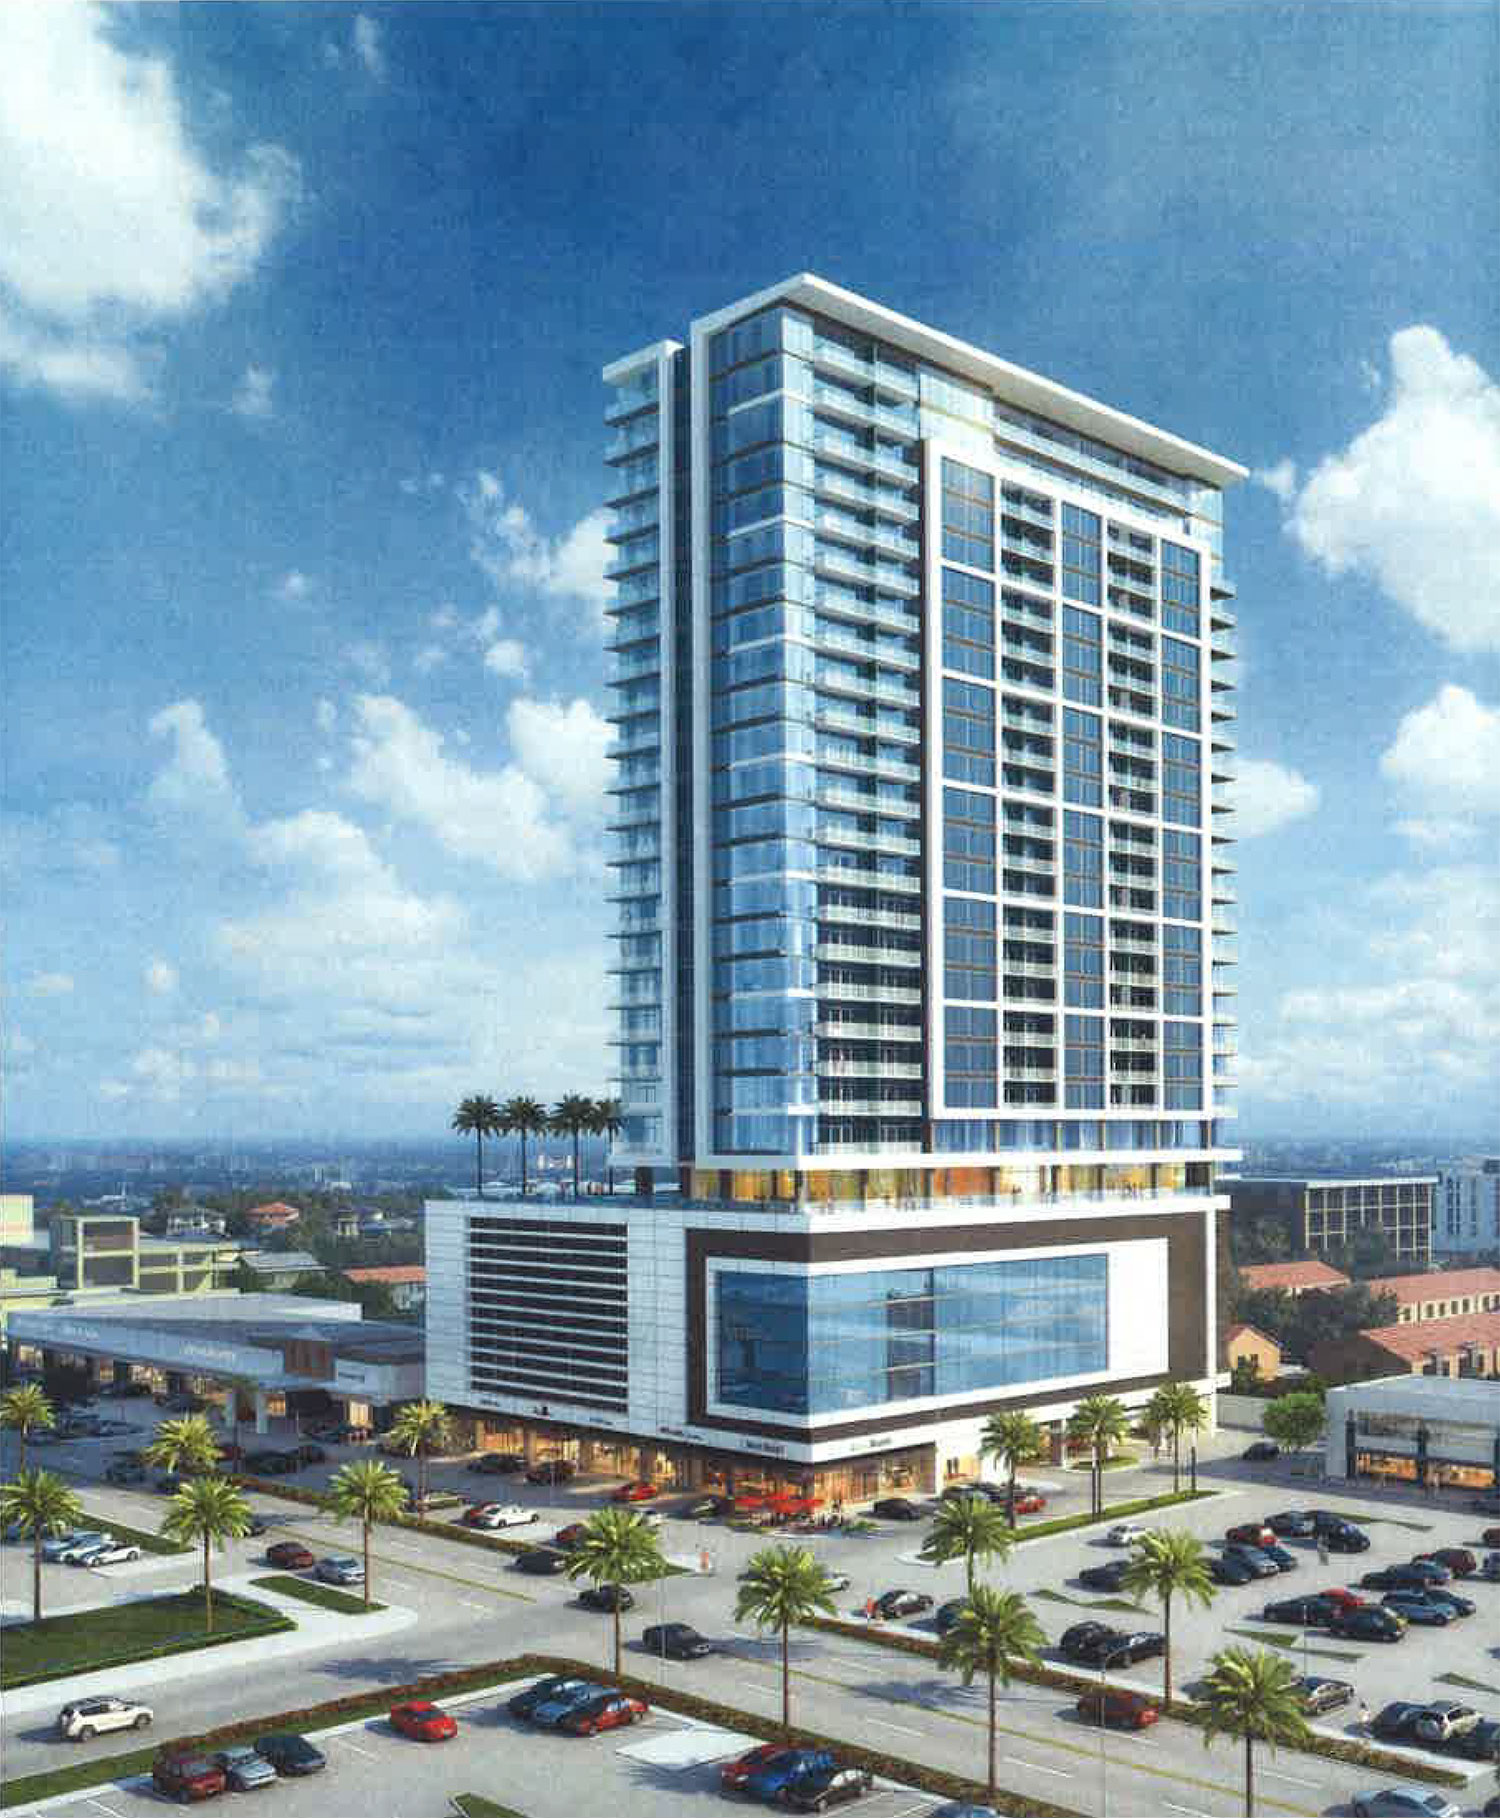 The 29-story residential tower proposed to replace a portion of the historic River Oaks Shopping Center building at 1964 West Gray.